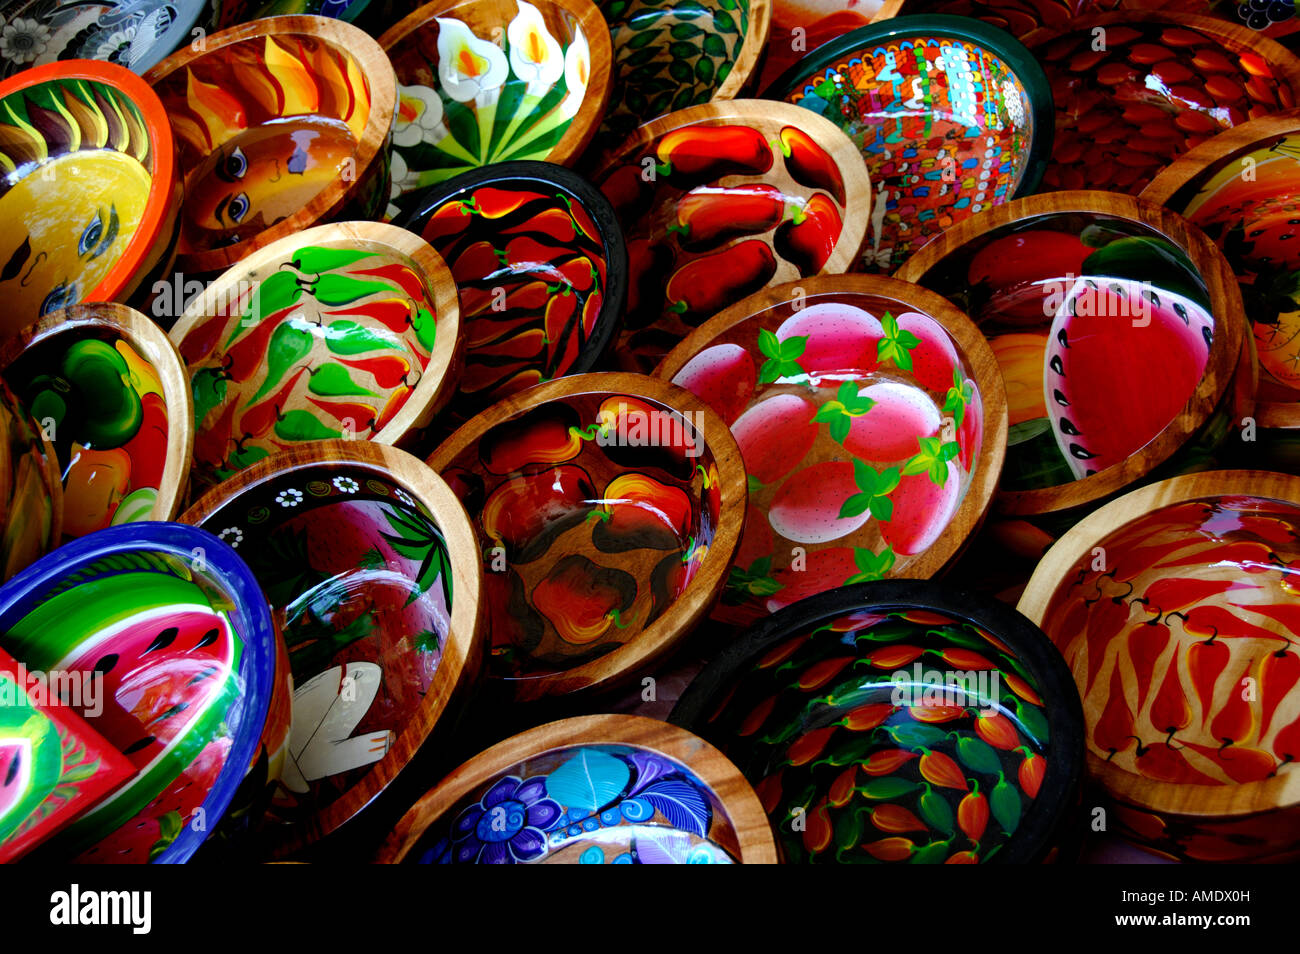 North America, Mexico, State of Guerrero, Acapulco. Colorful wooden bowls hand painted with traditional designs. - Stock Image